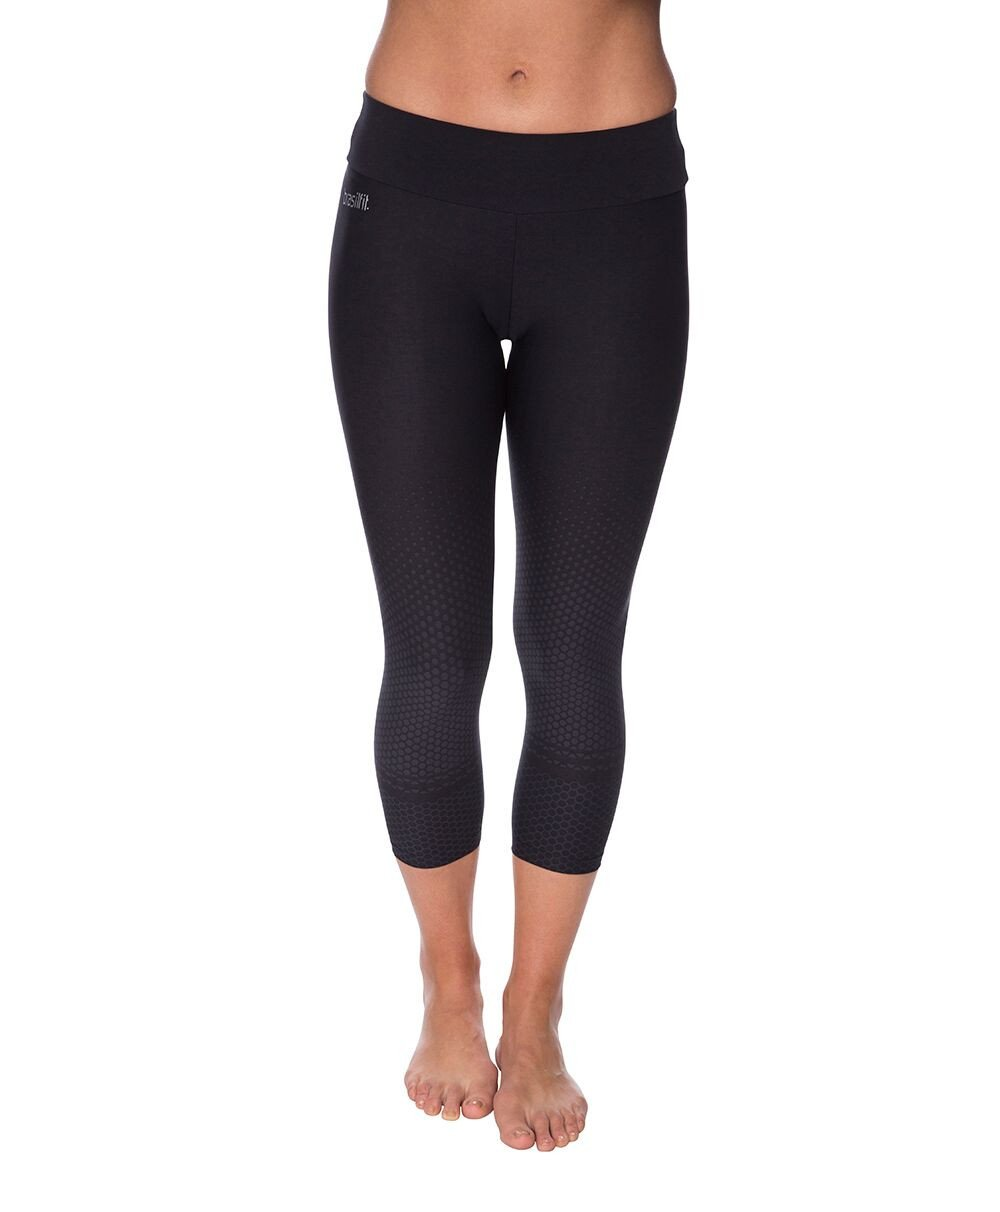 Side view product image for Brasilfit Quebec Calf Length activewear leggings.  Quebec leggings are part of our textured activewear legging collection that is focused on performance, high compression activewear.